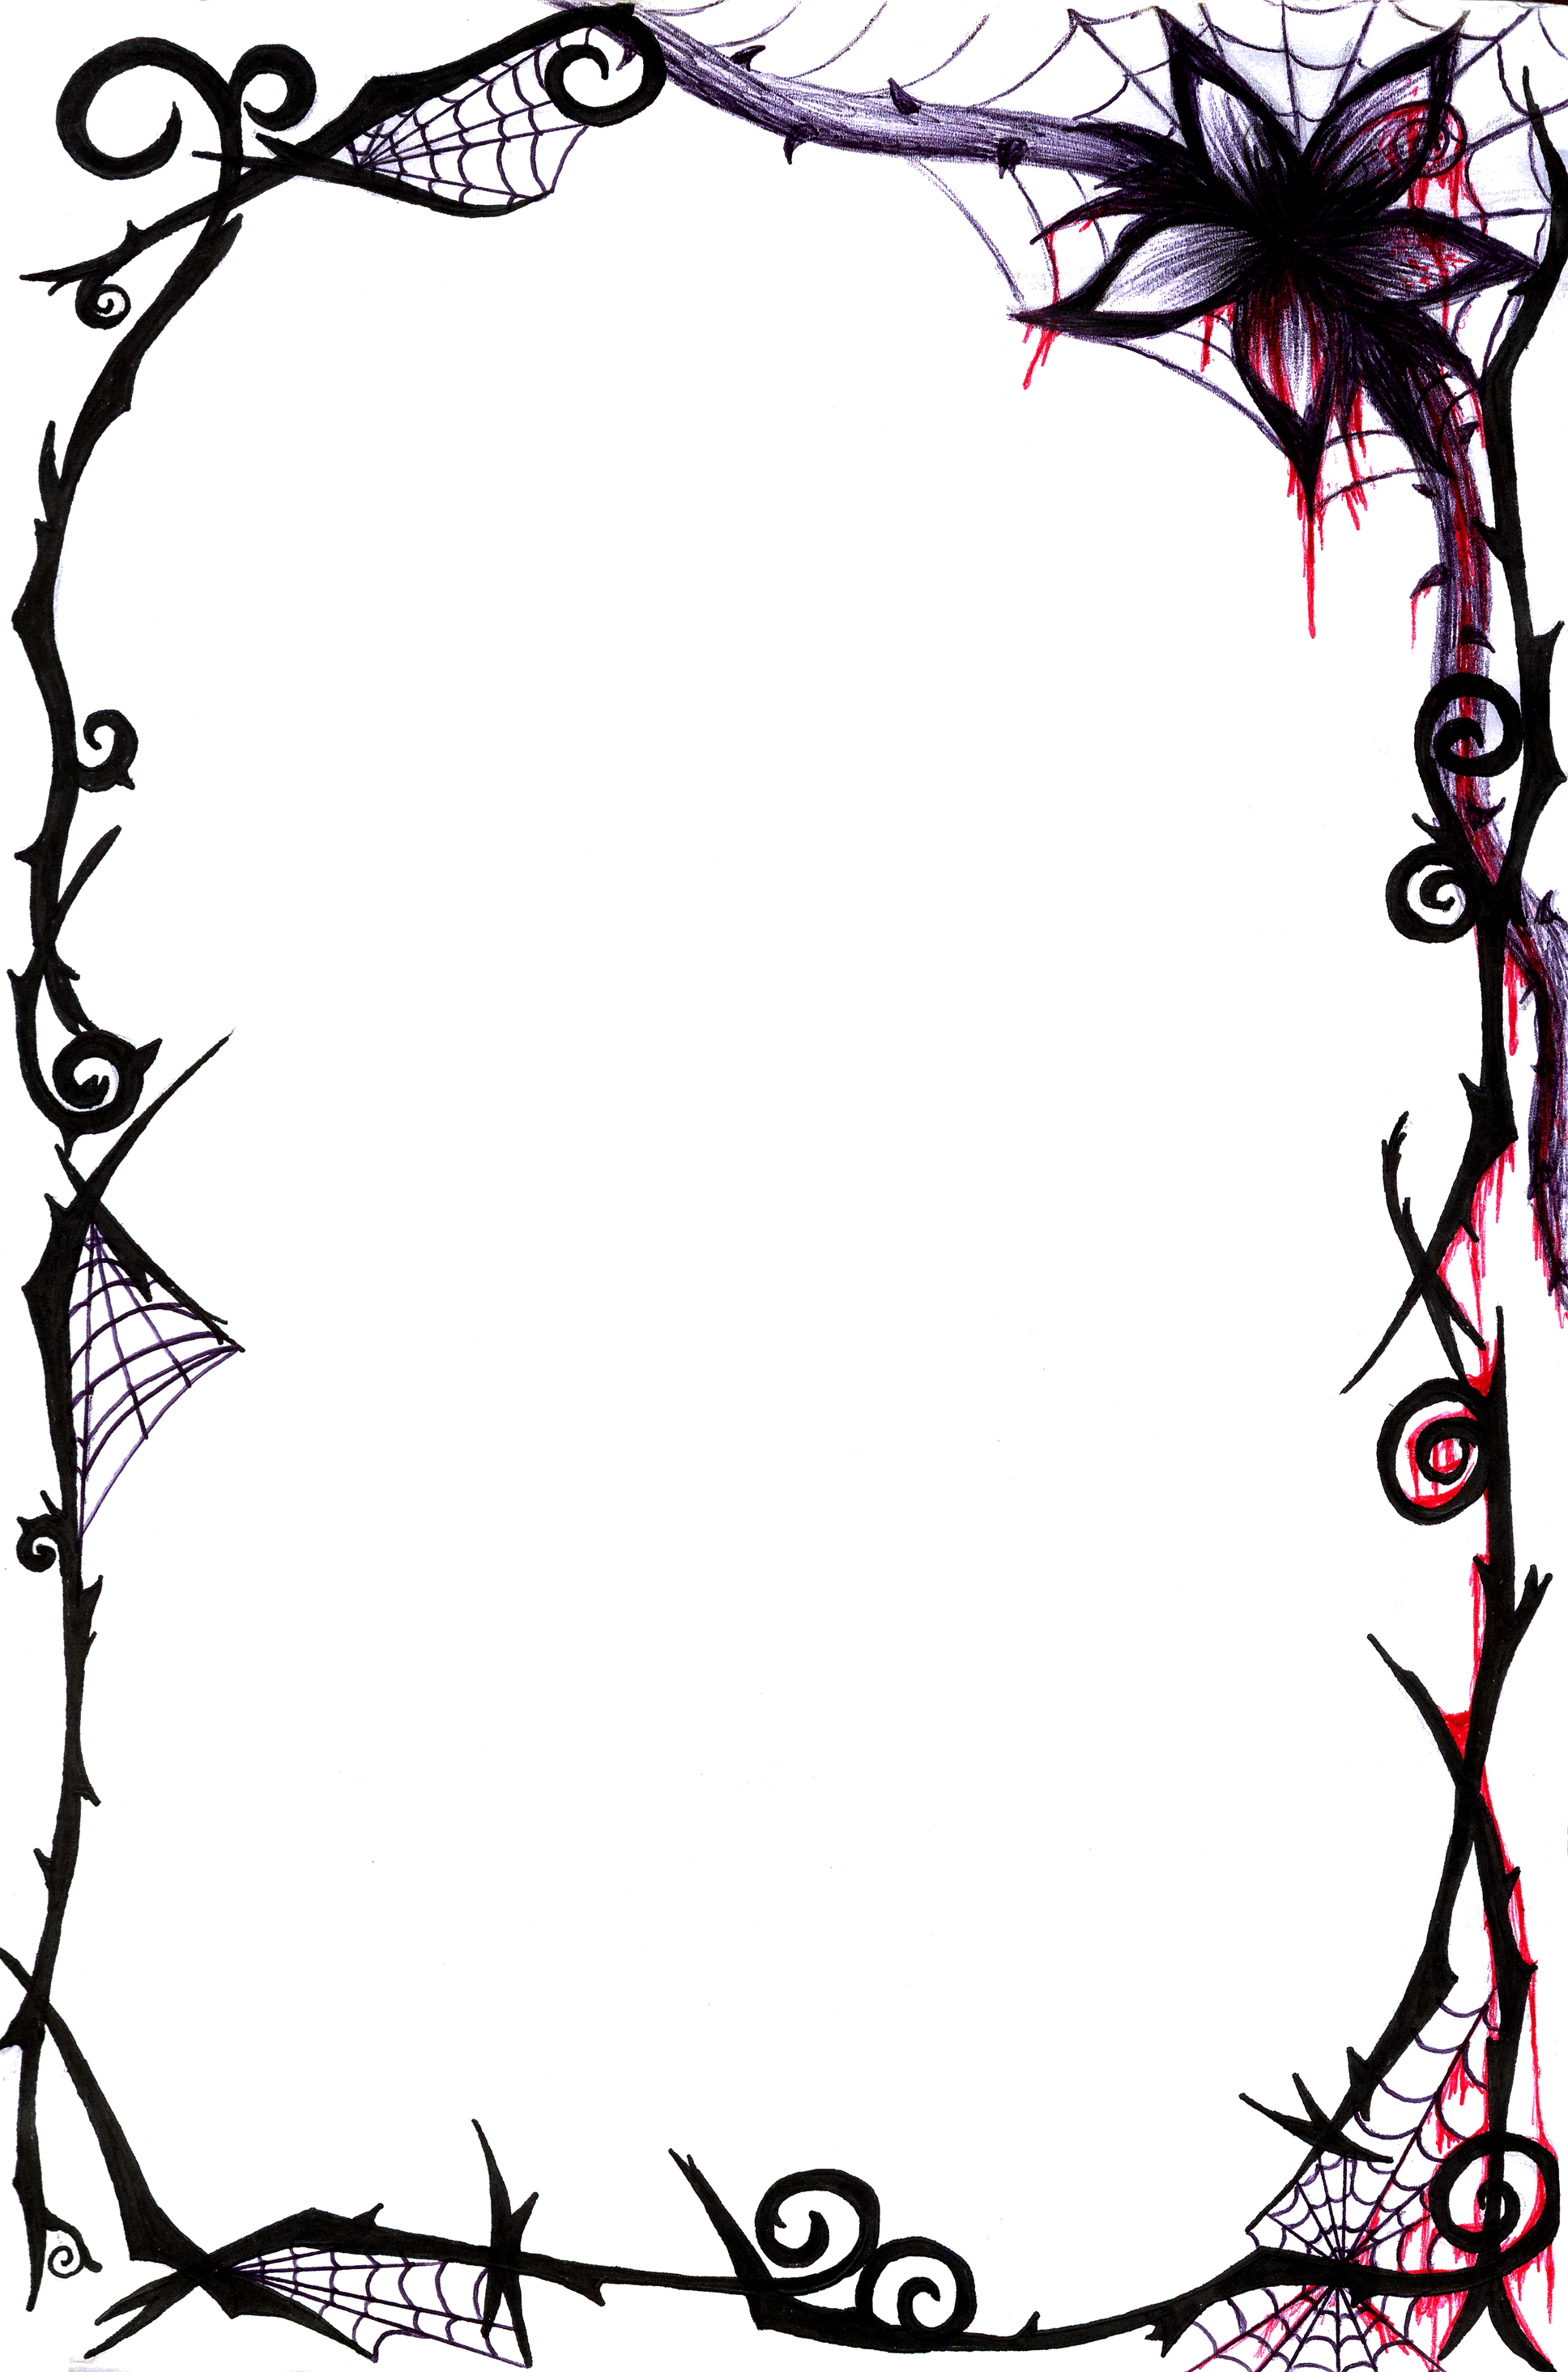 Free Page Border Designs For Projects Download Free Clip Art Free Clip Art On Clipart Library